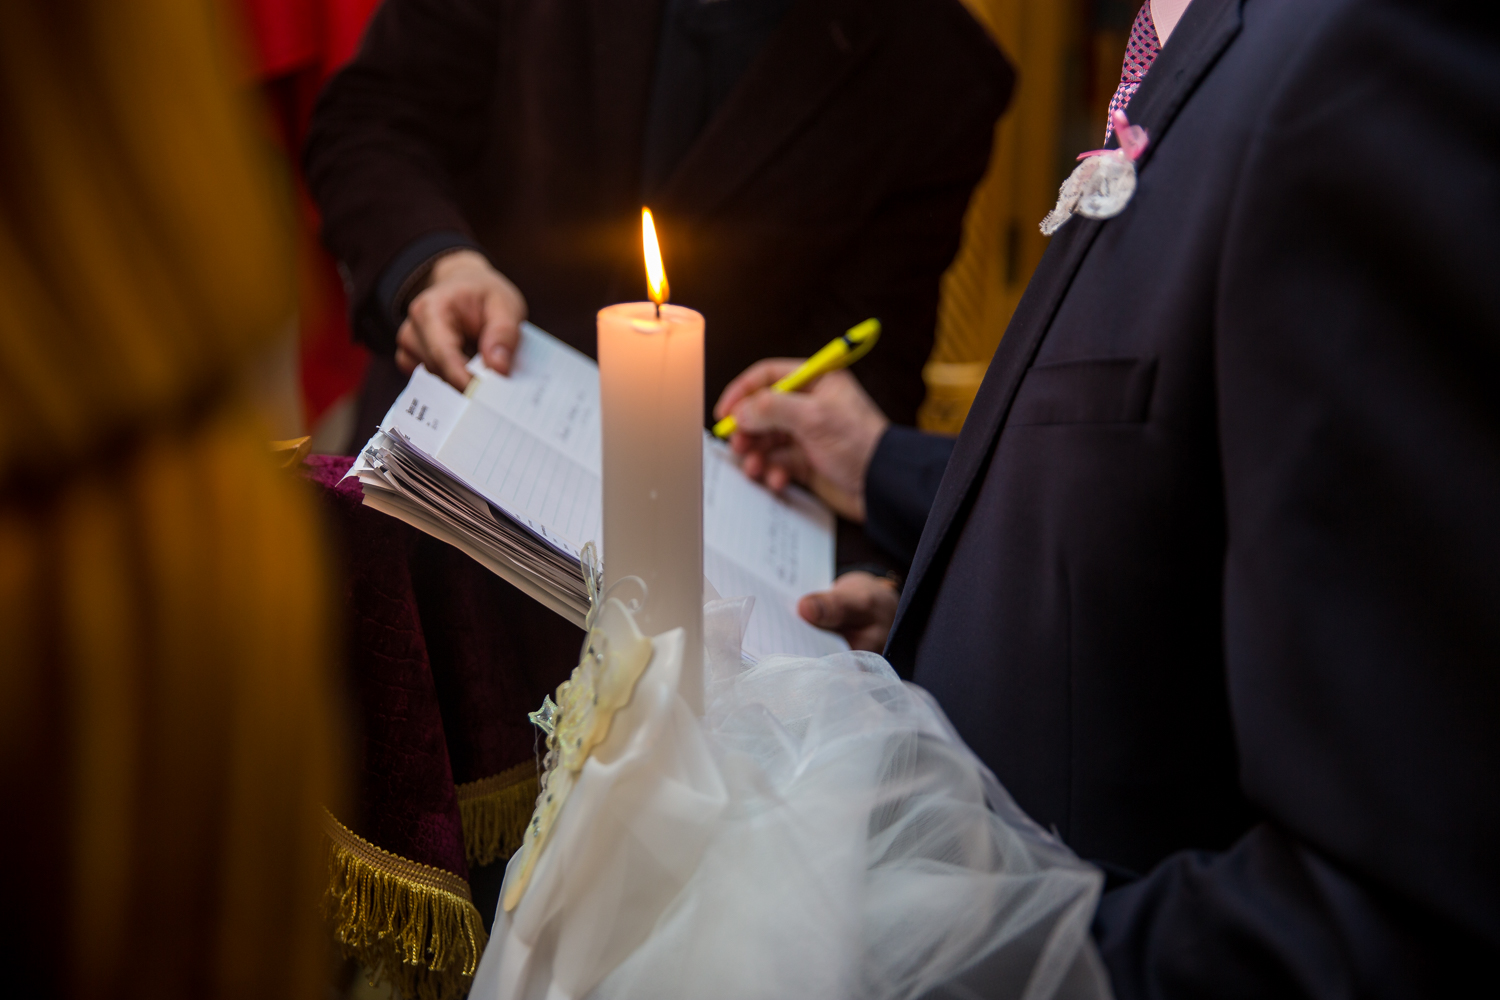 christening-queens-NYC-2016-photograohy-104.jpg